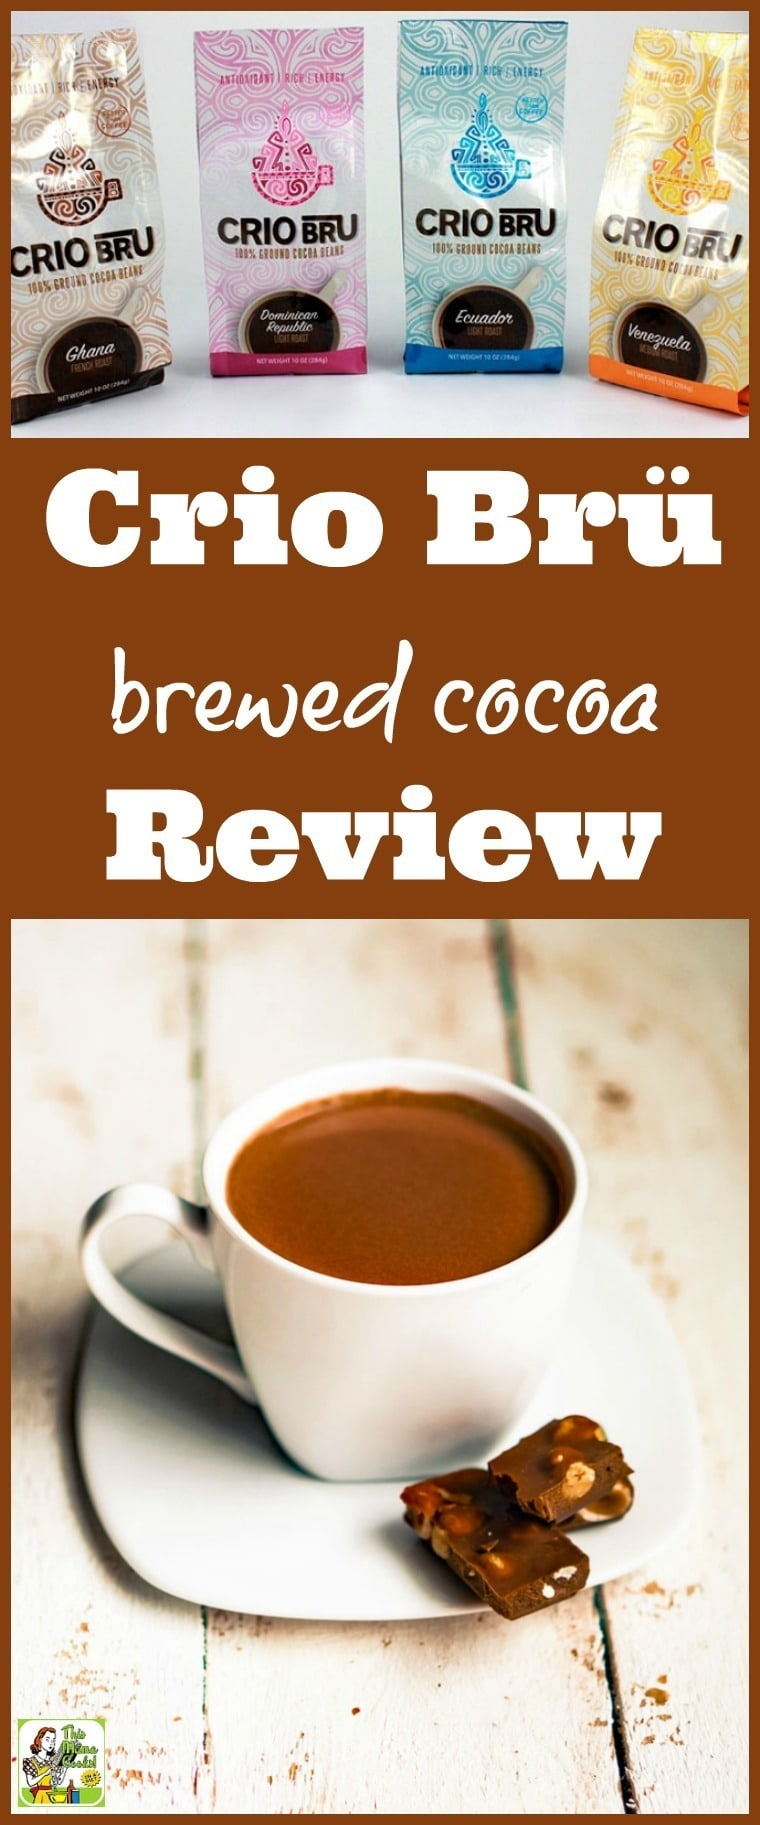 Looking for Crio Bru reviews? Read how Crio Bru brewed cocoa beans are a healthy alternative to hot chocolate or coffee. Includes Crio bean brewing tips.